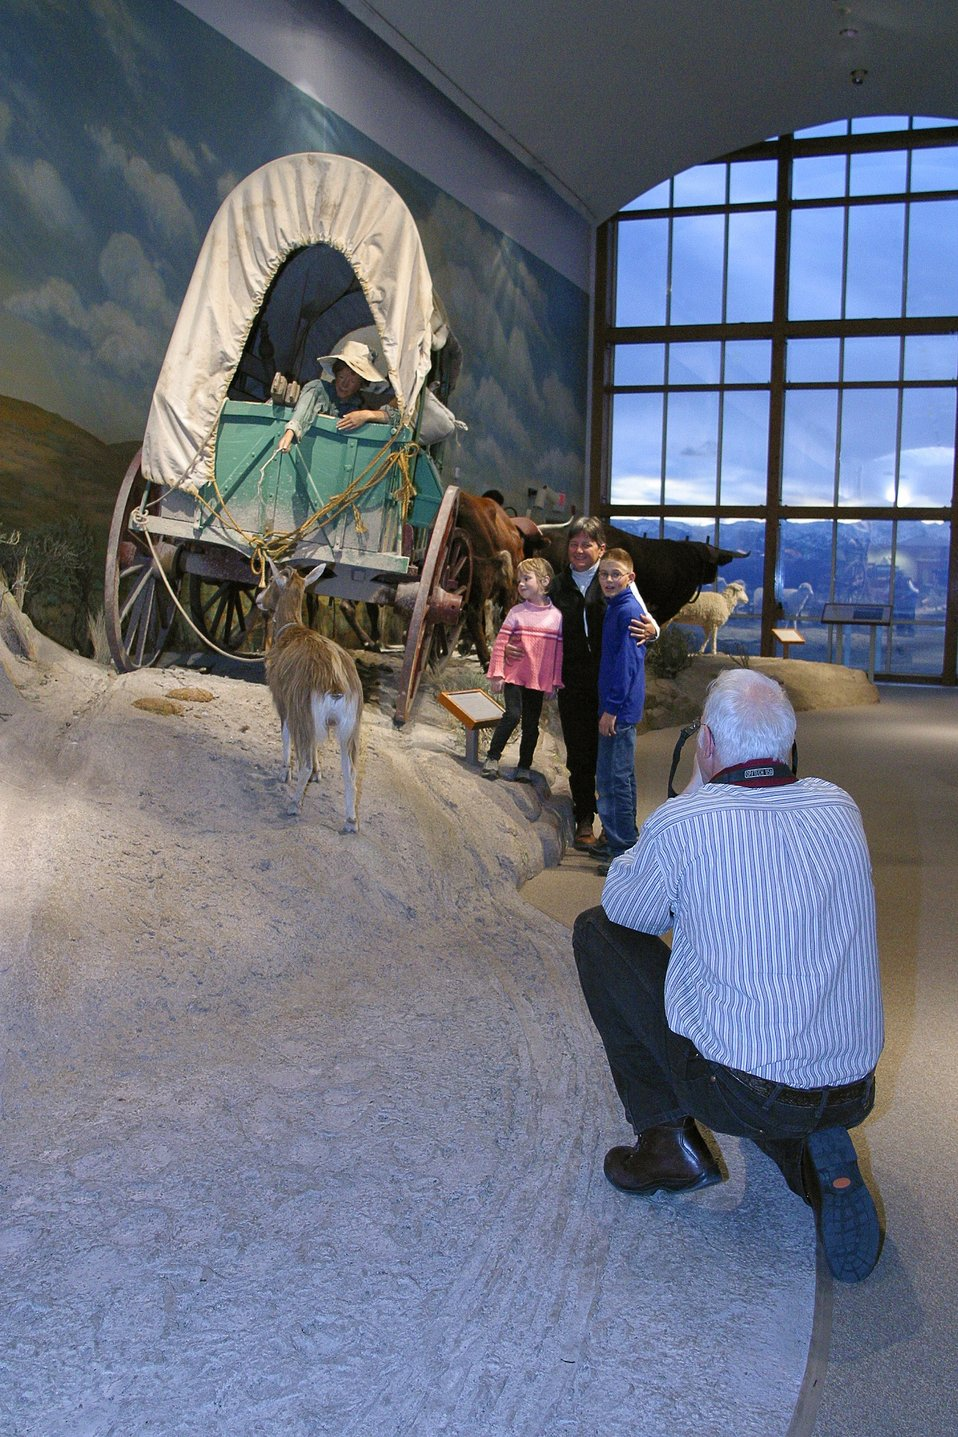 The main Gallery at the National Historic Oregon Trail Enterpretive Center depicts life size scenes along the Oregon Trail.